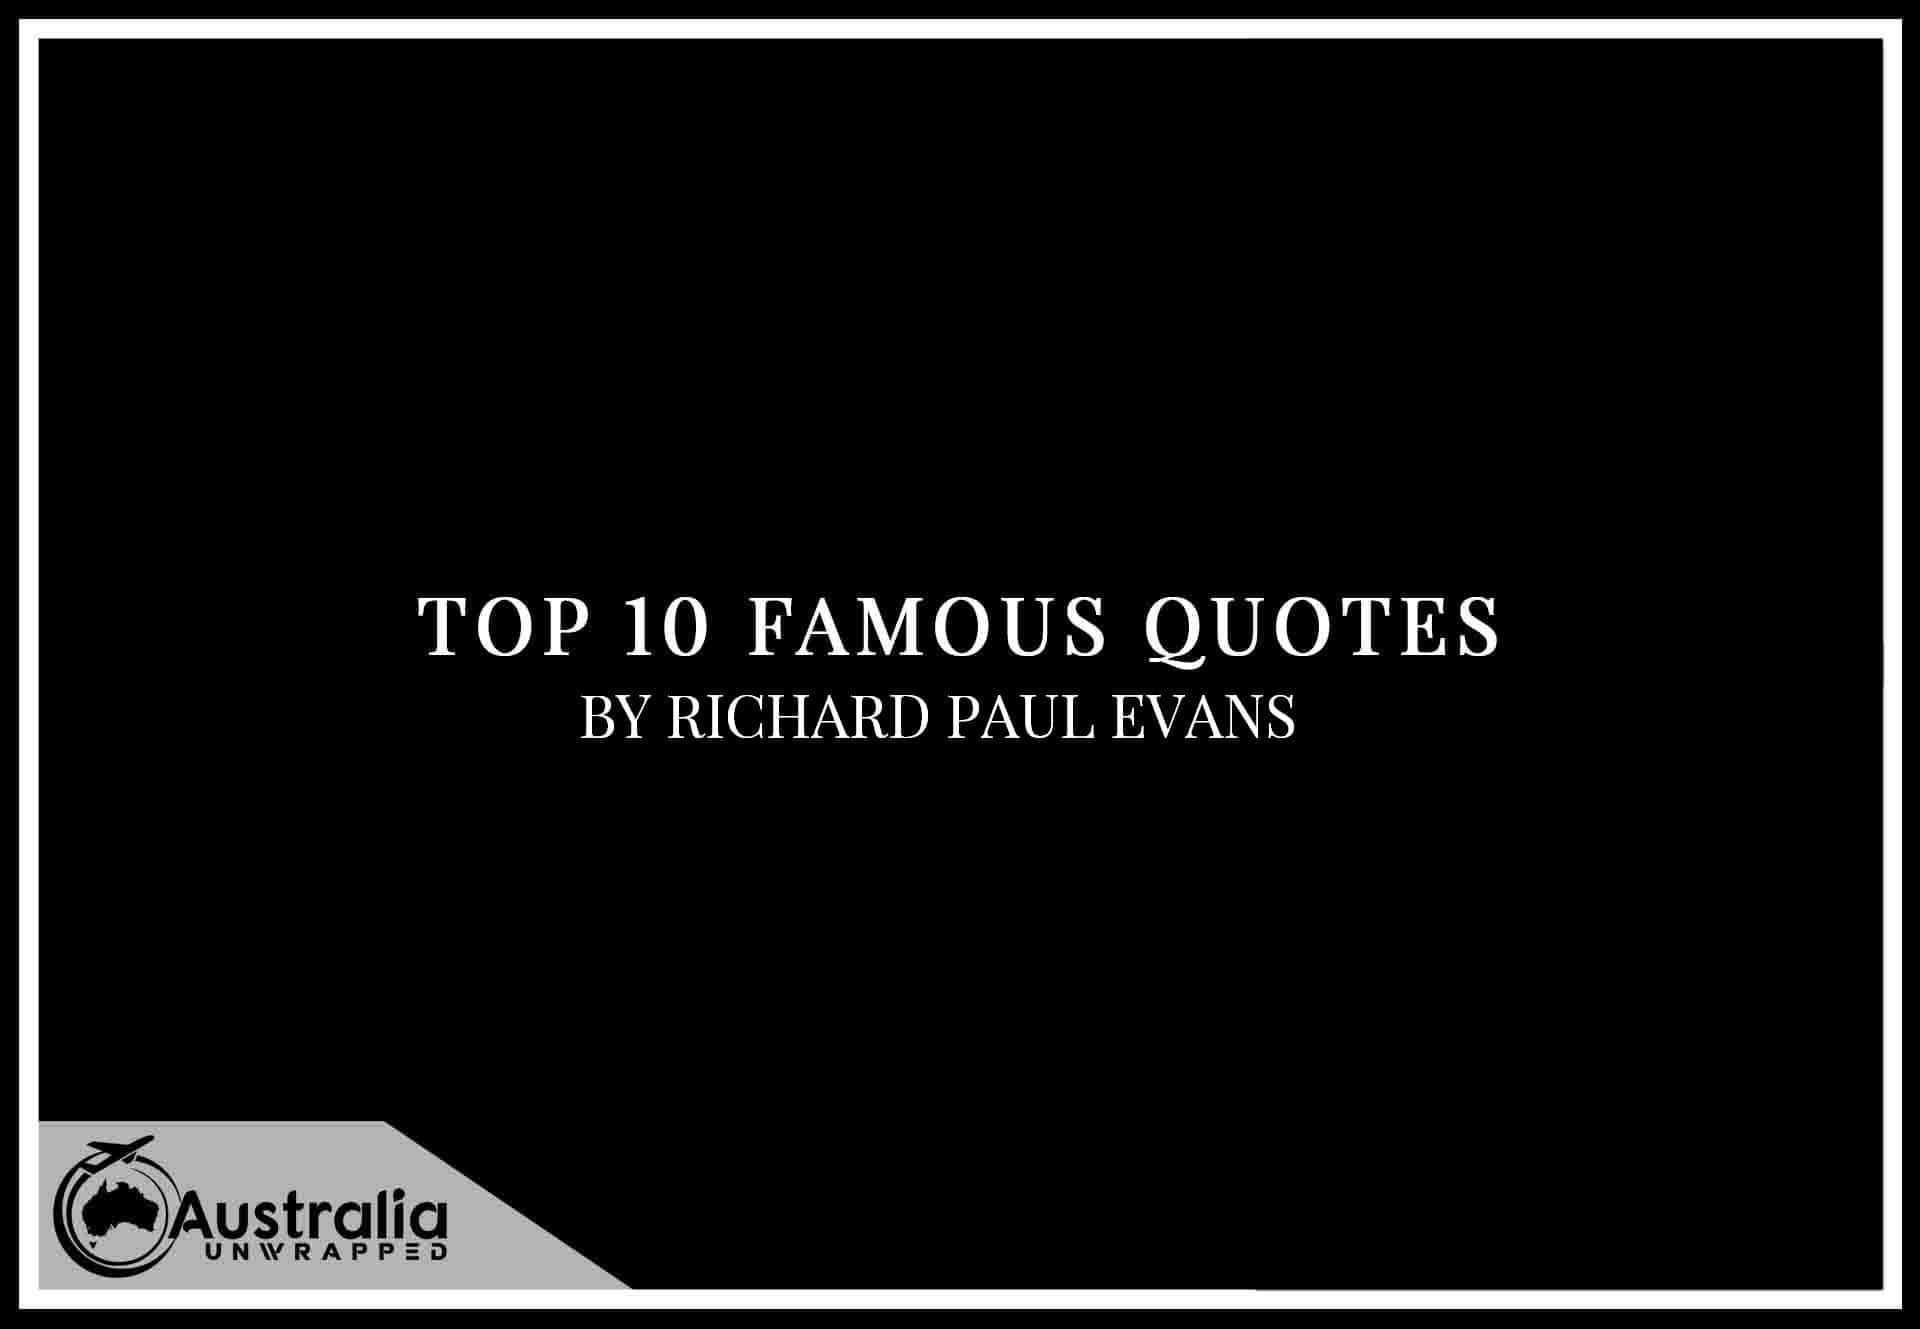 Richard Paul Evans's Top 10 Popular and Famous Quotes